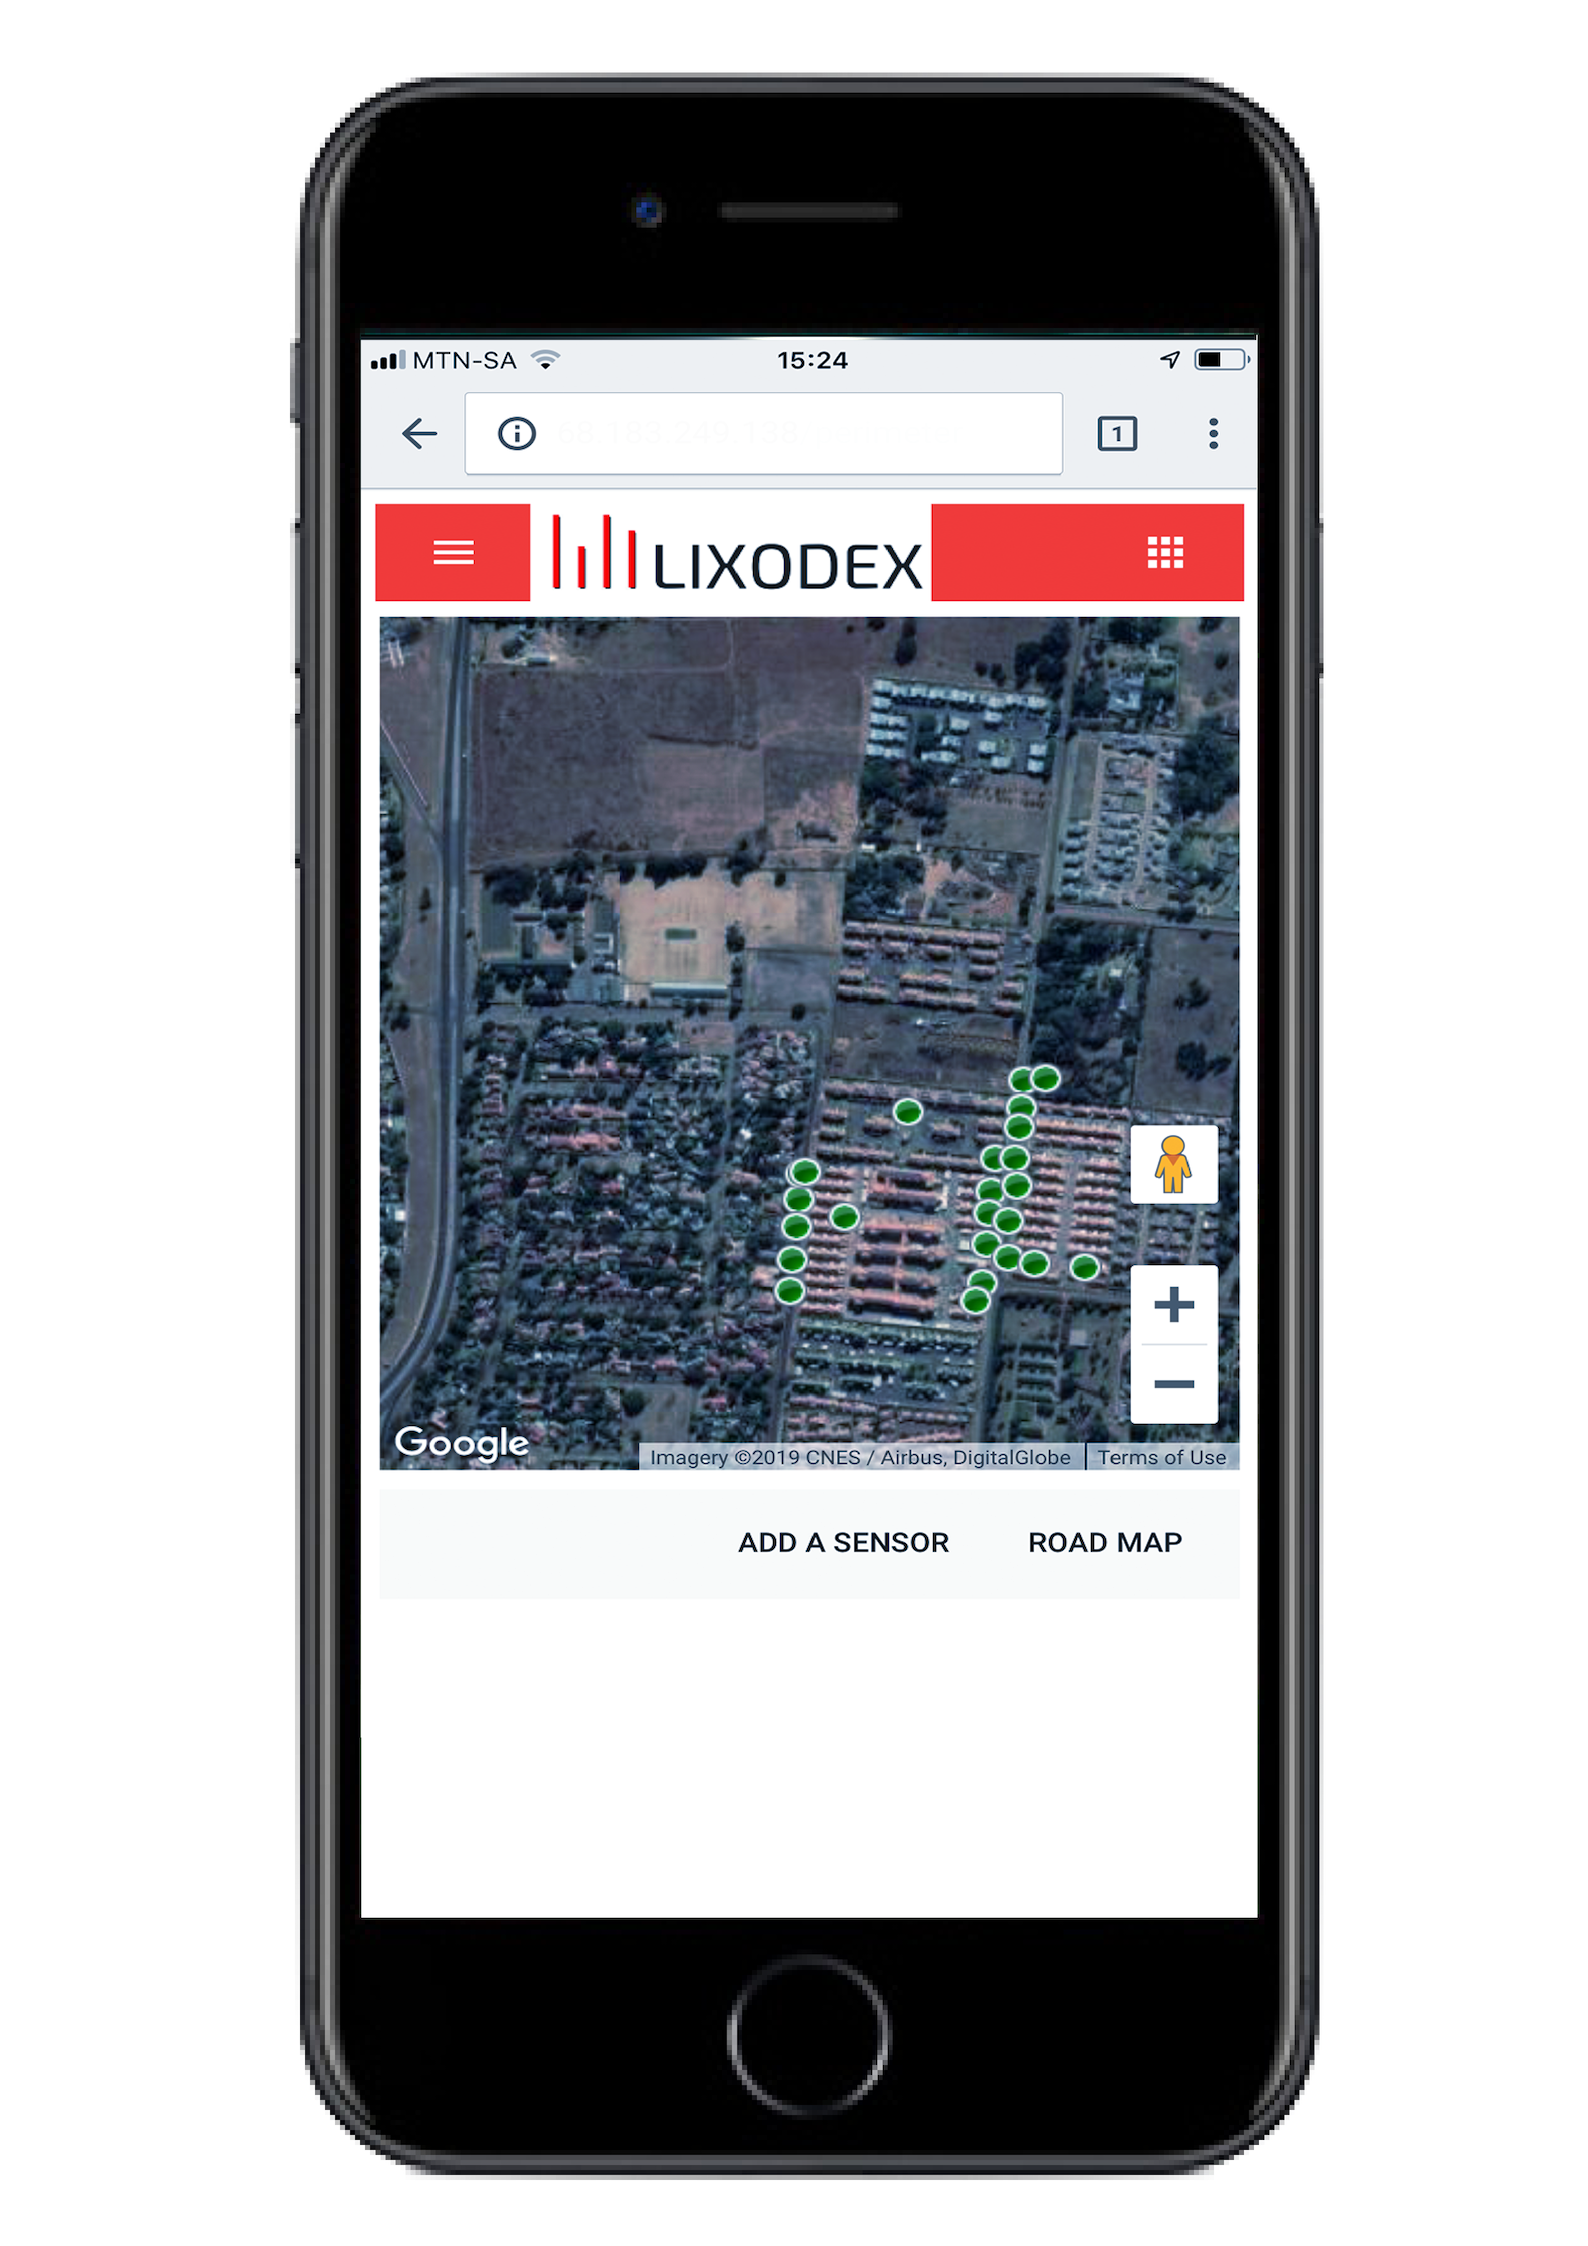 Lixodex security solutions mobile phone, google maps